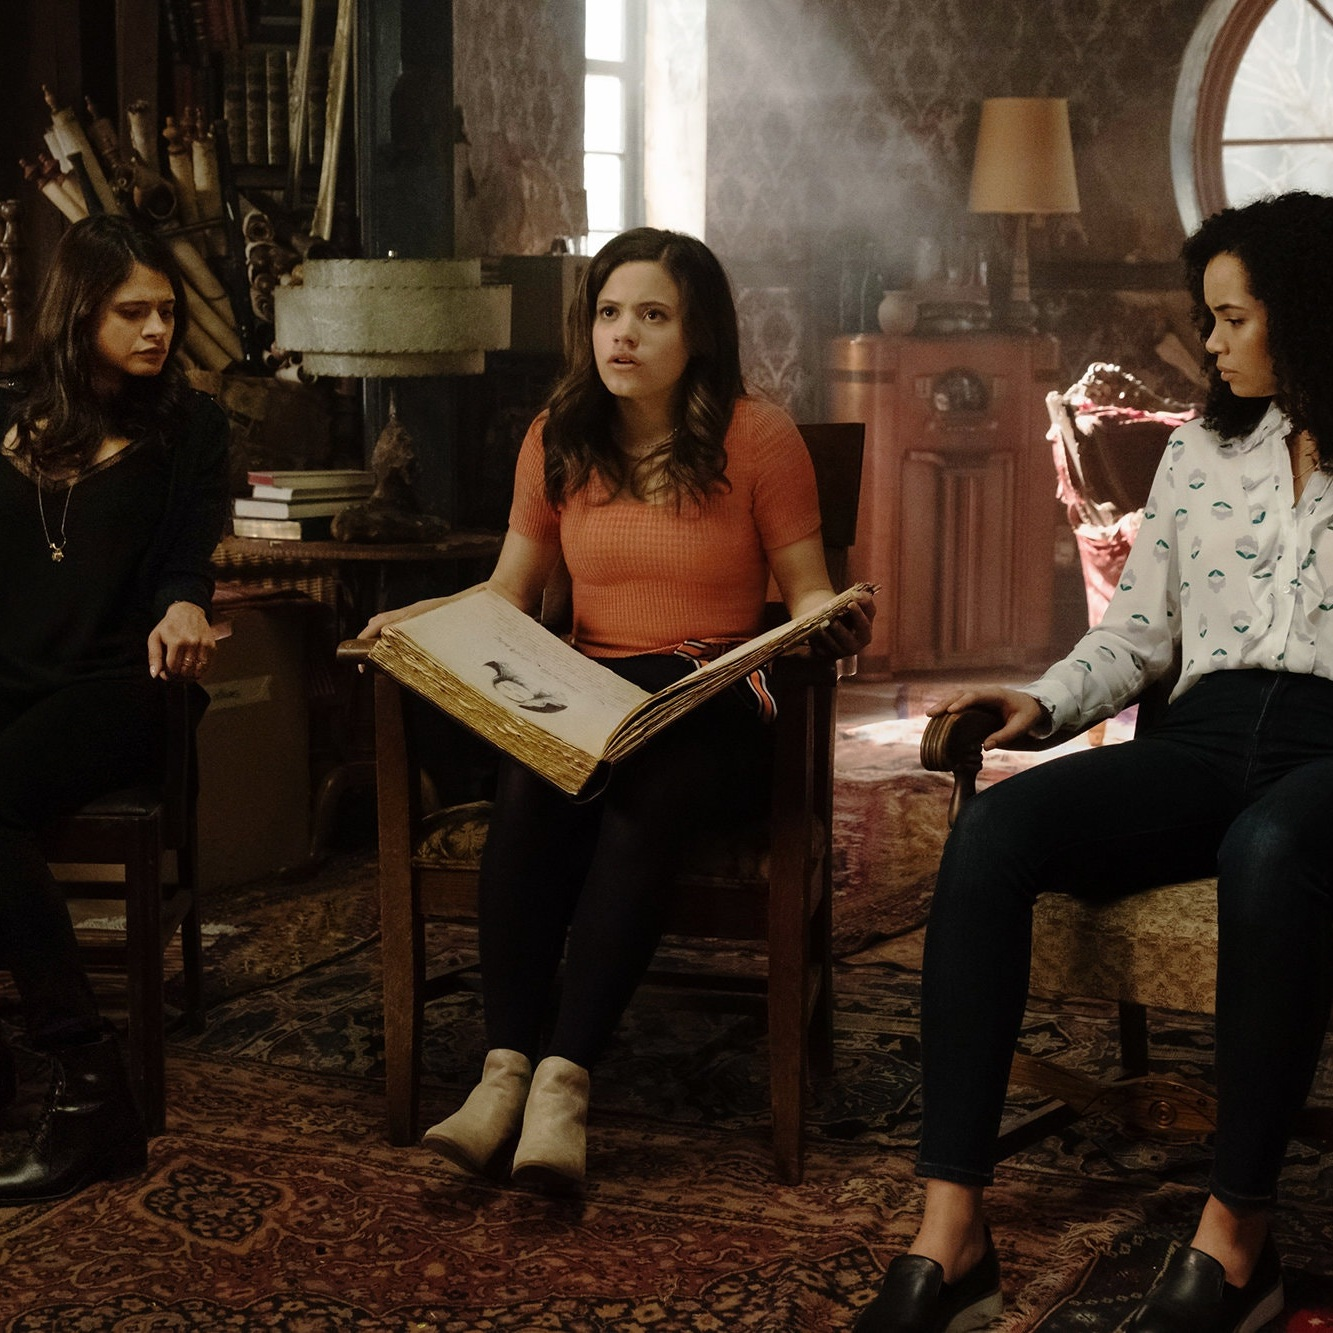 The New York Times The Witches of 'Charmed' Are Out to Slay the Patriarchy